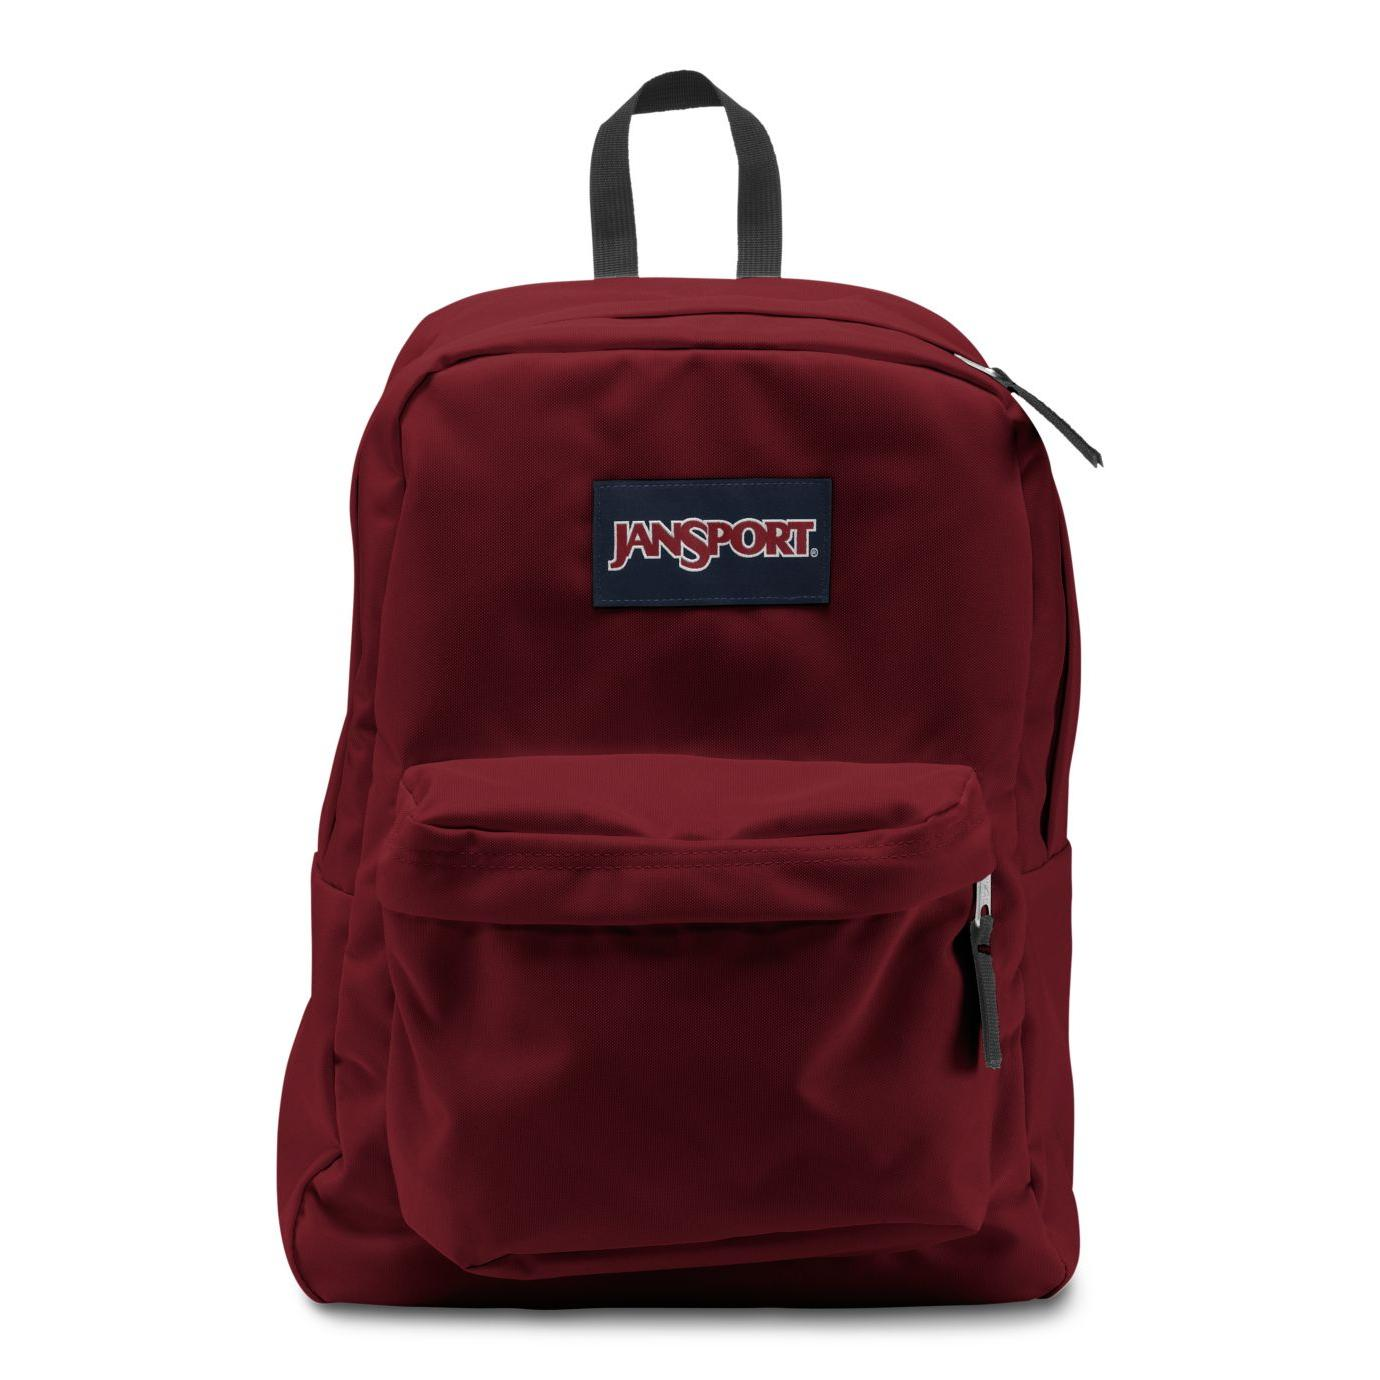 e8e84a4d61 Sport Backpacks - Buy Sport Backpacks at Best Price in Singapore ...